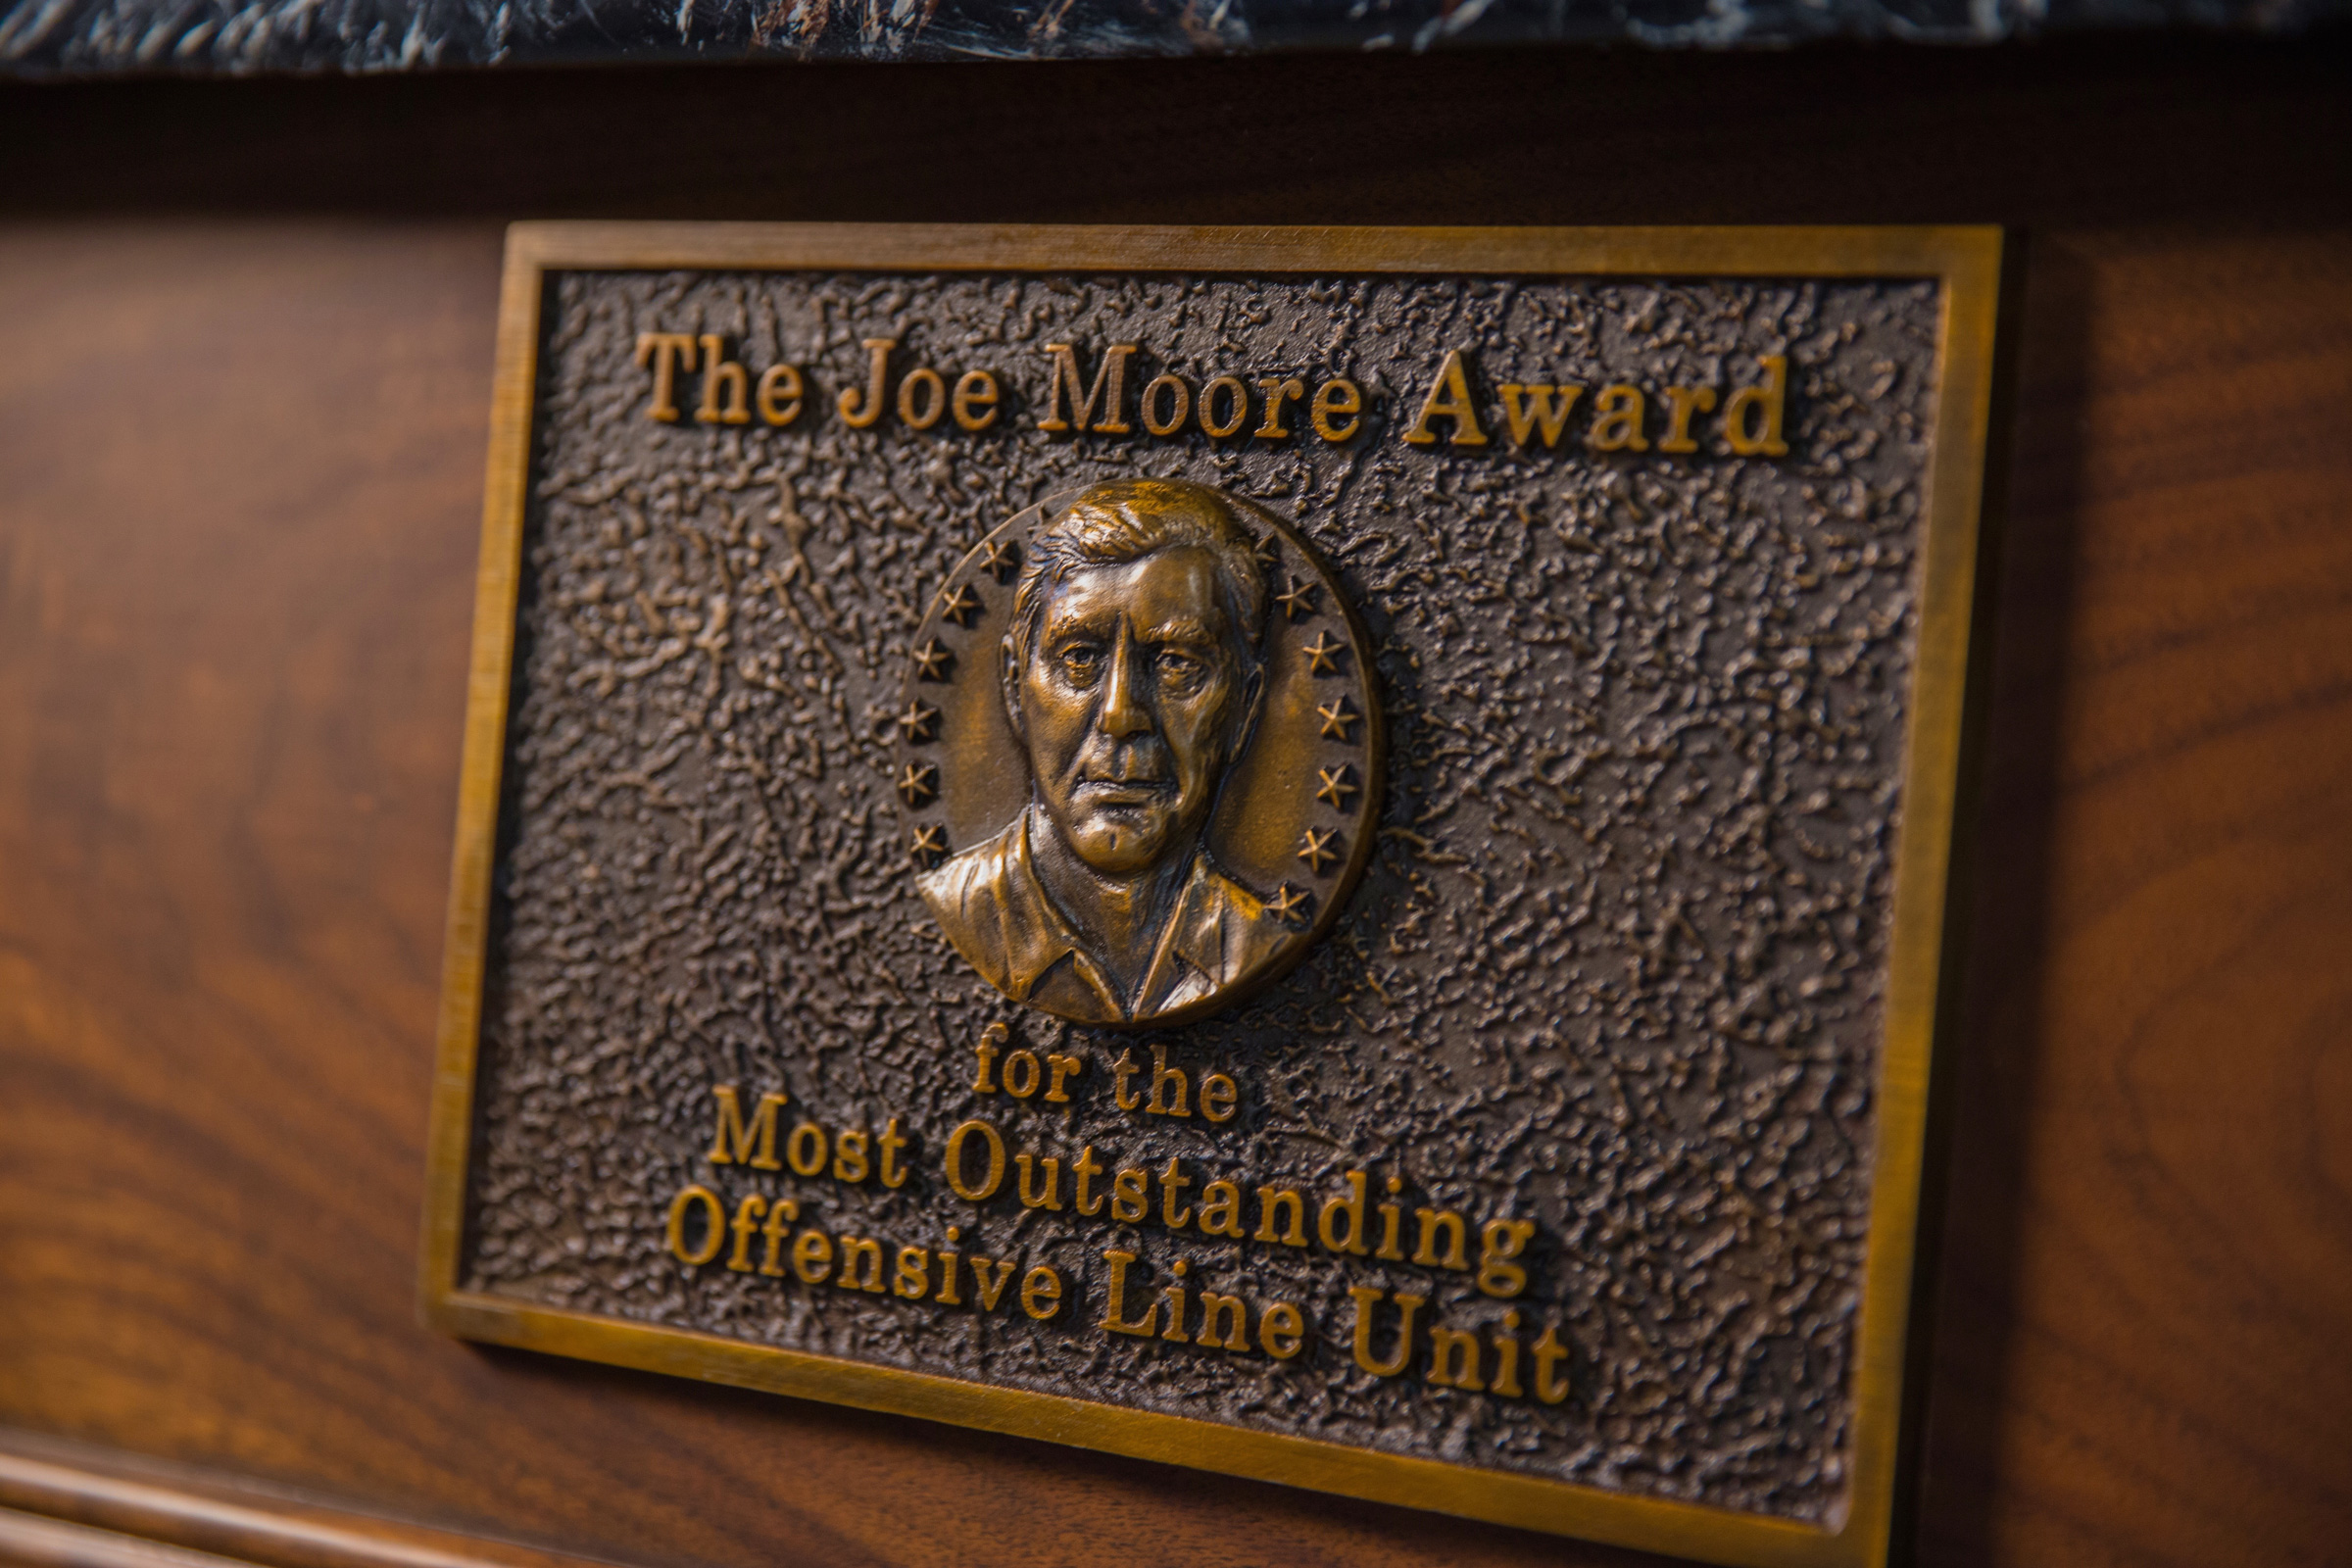 The trophy's bas-relief includes the likeness of Joe Moore, considered one of the greatest offensive line coaches in college football history.